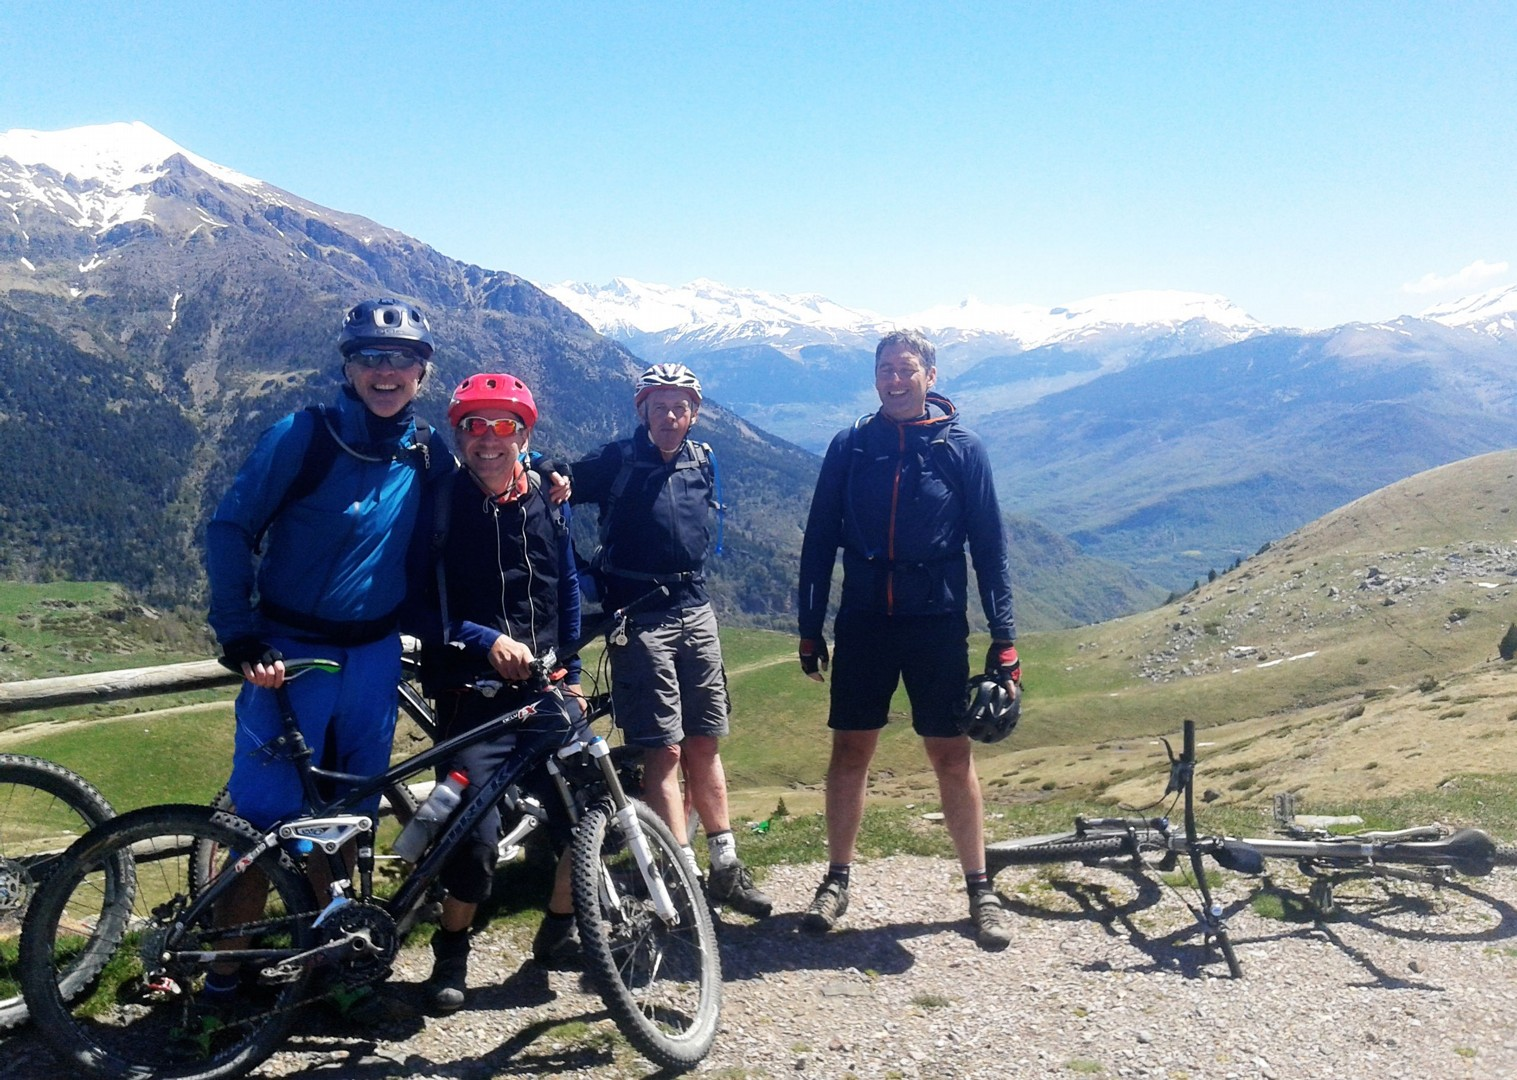 20160516_123642.jpg - Spain - Pyrenees Enduro - Guided Mountain Bike Holiday - Mountain Biking